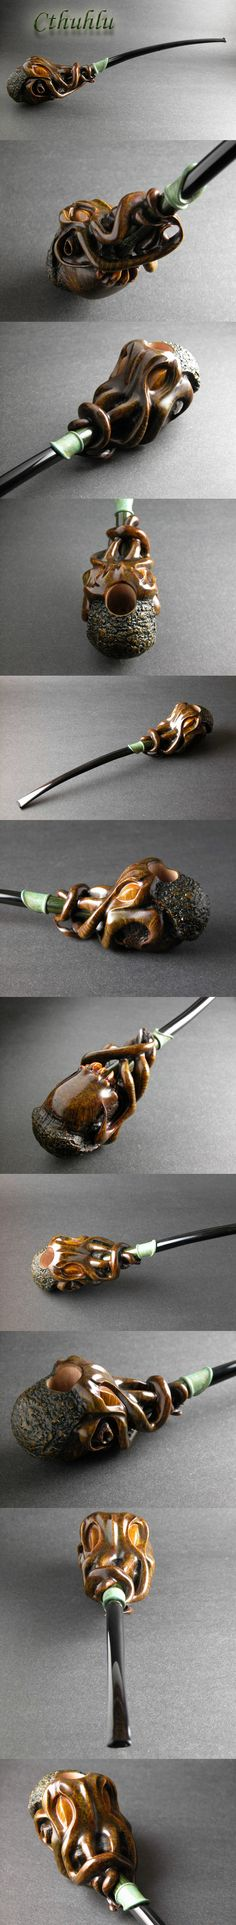 Cthulhu churchwarden. Simply amazing!